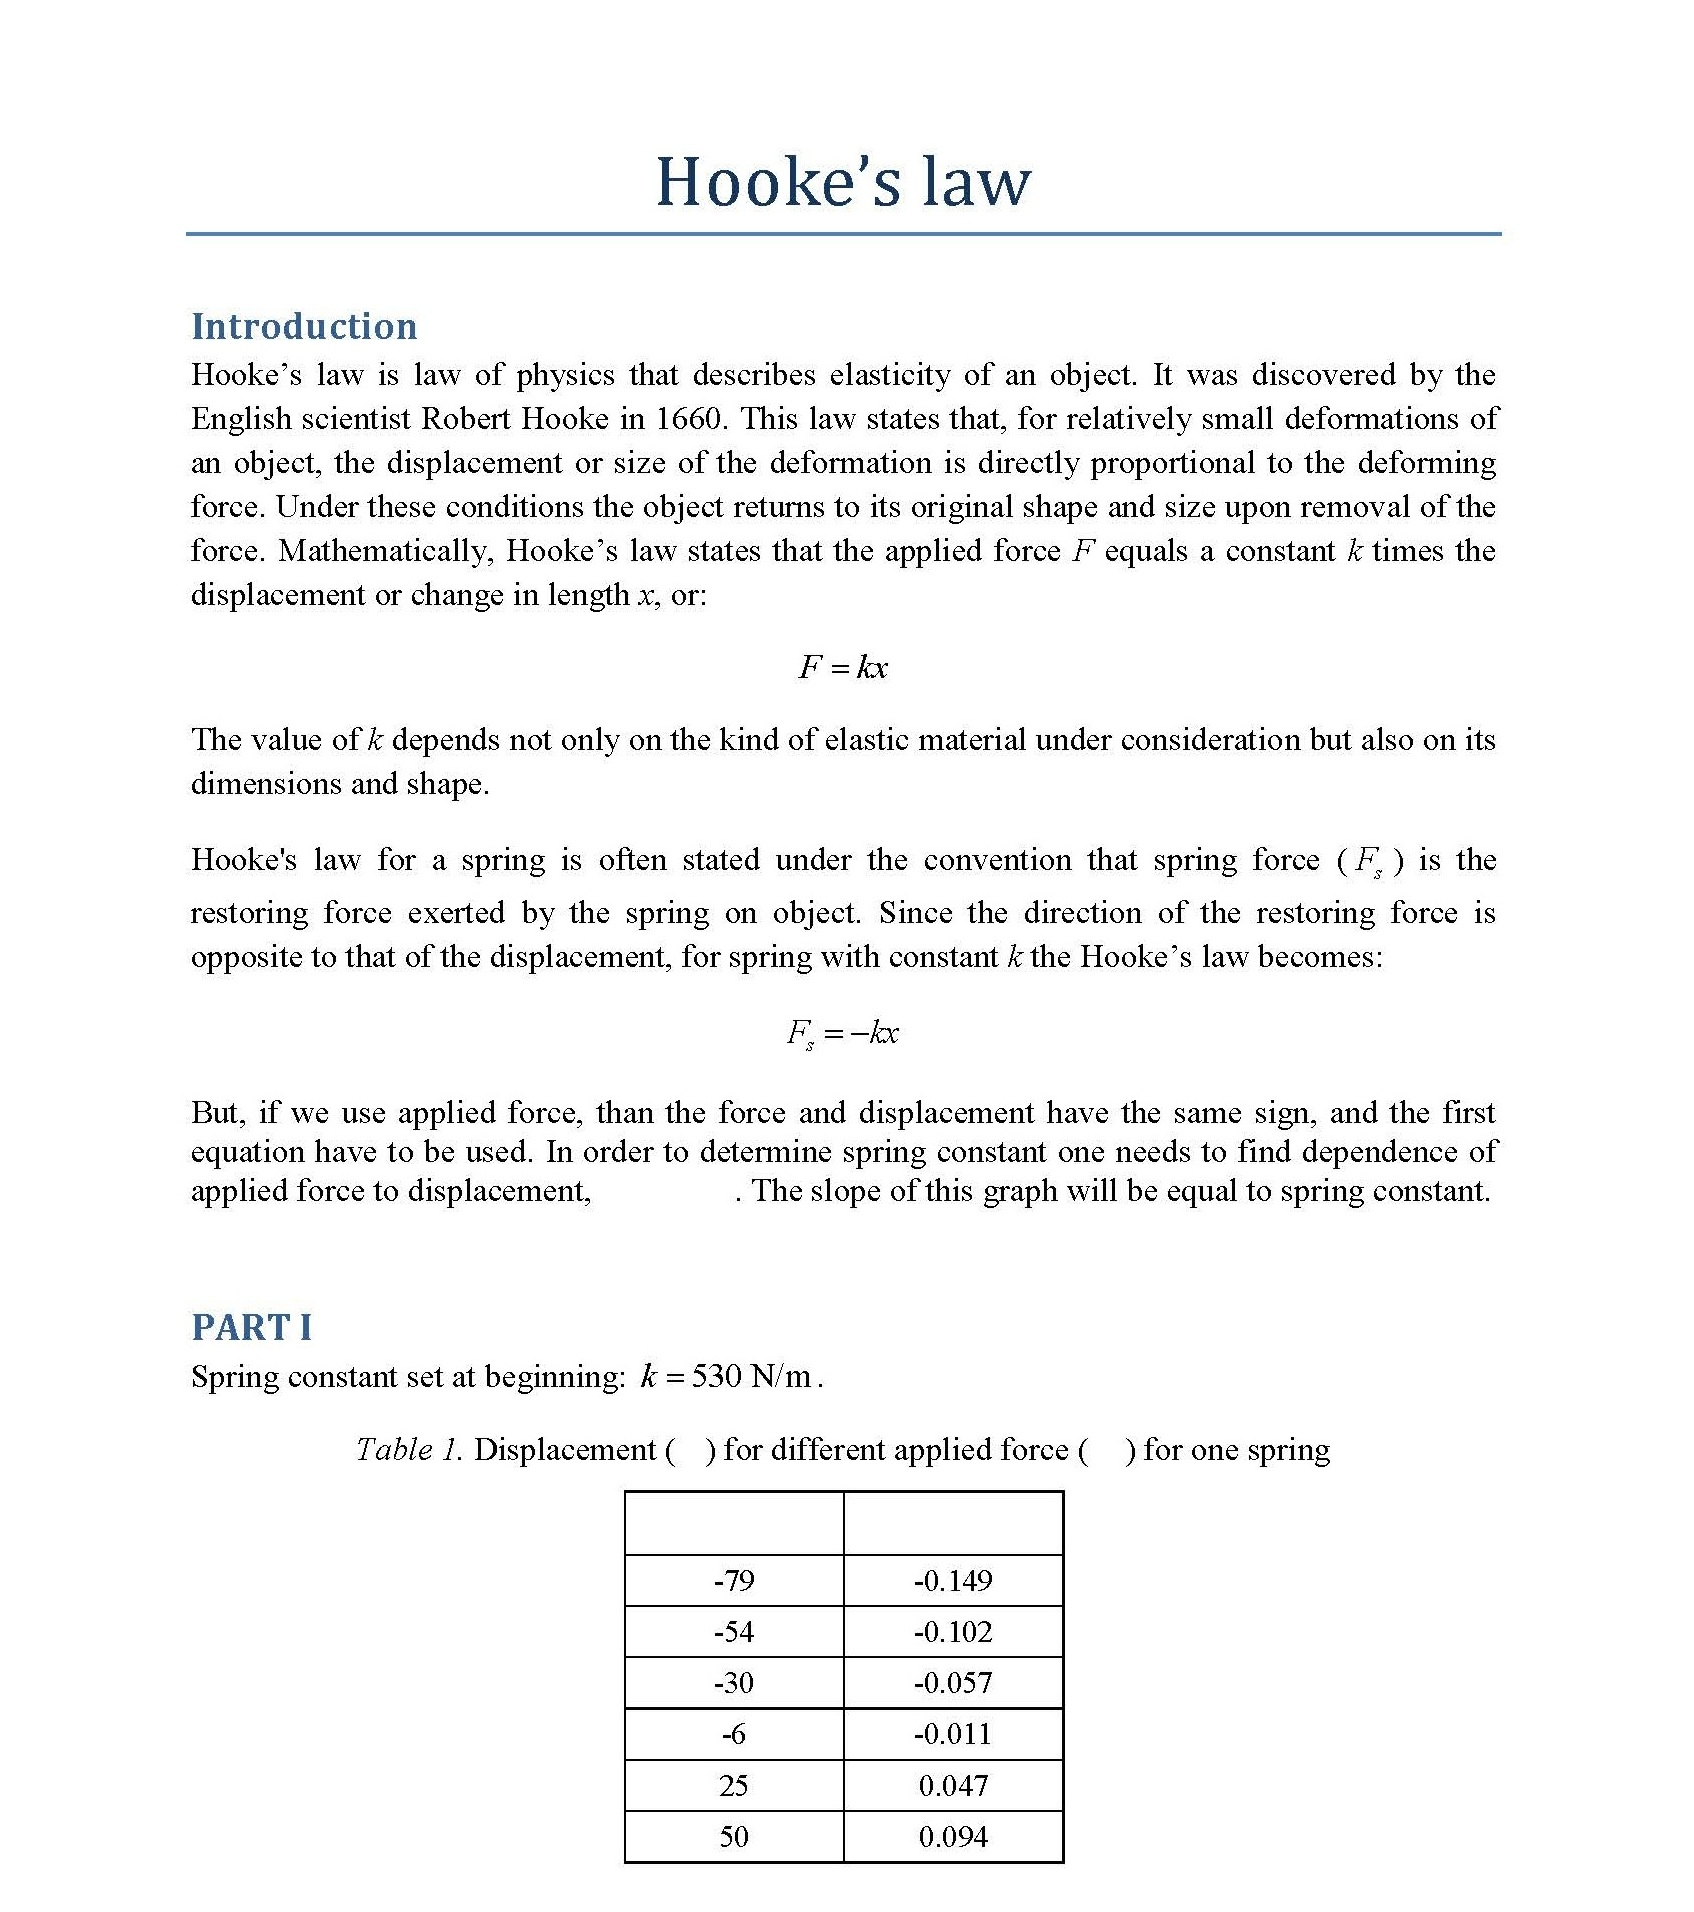 Hooke's Law Simulation